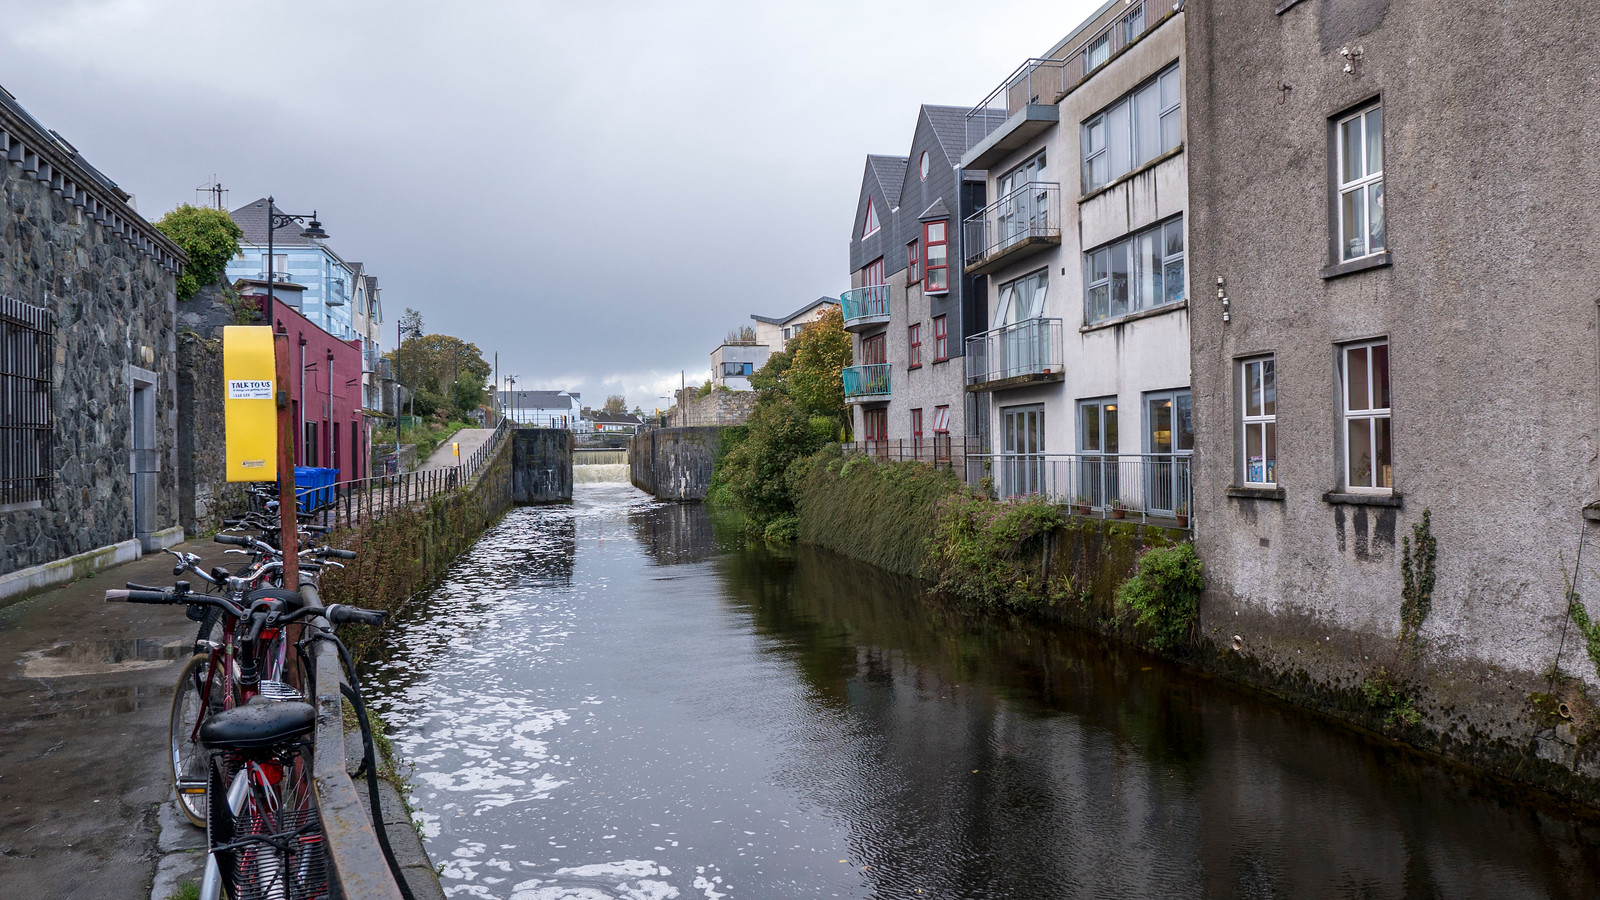 Things to Do in Galway: Galway 1 Day Travel Itinerary